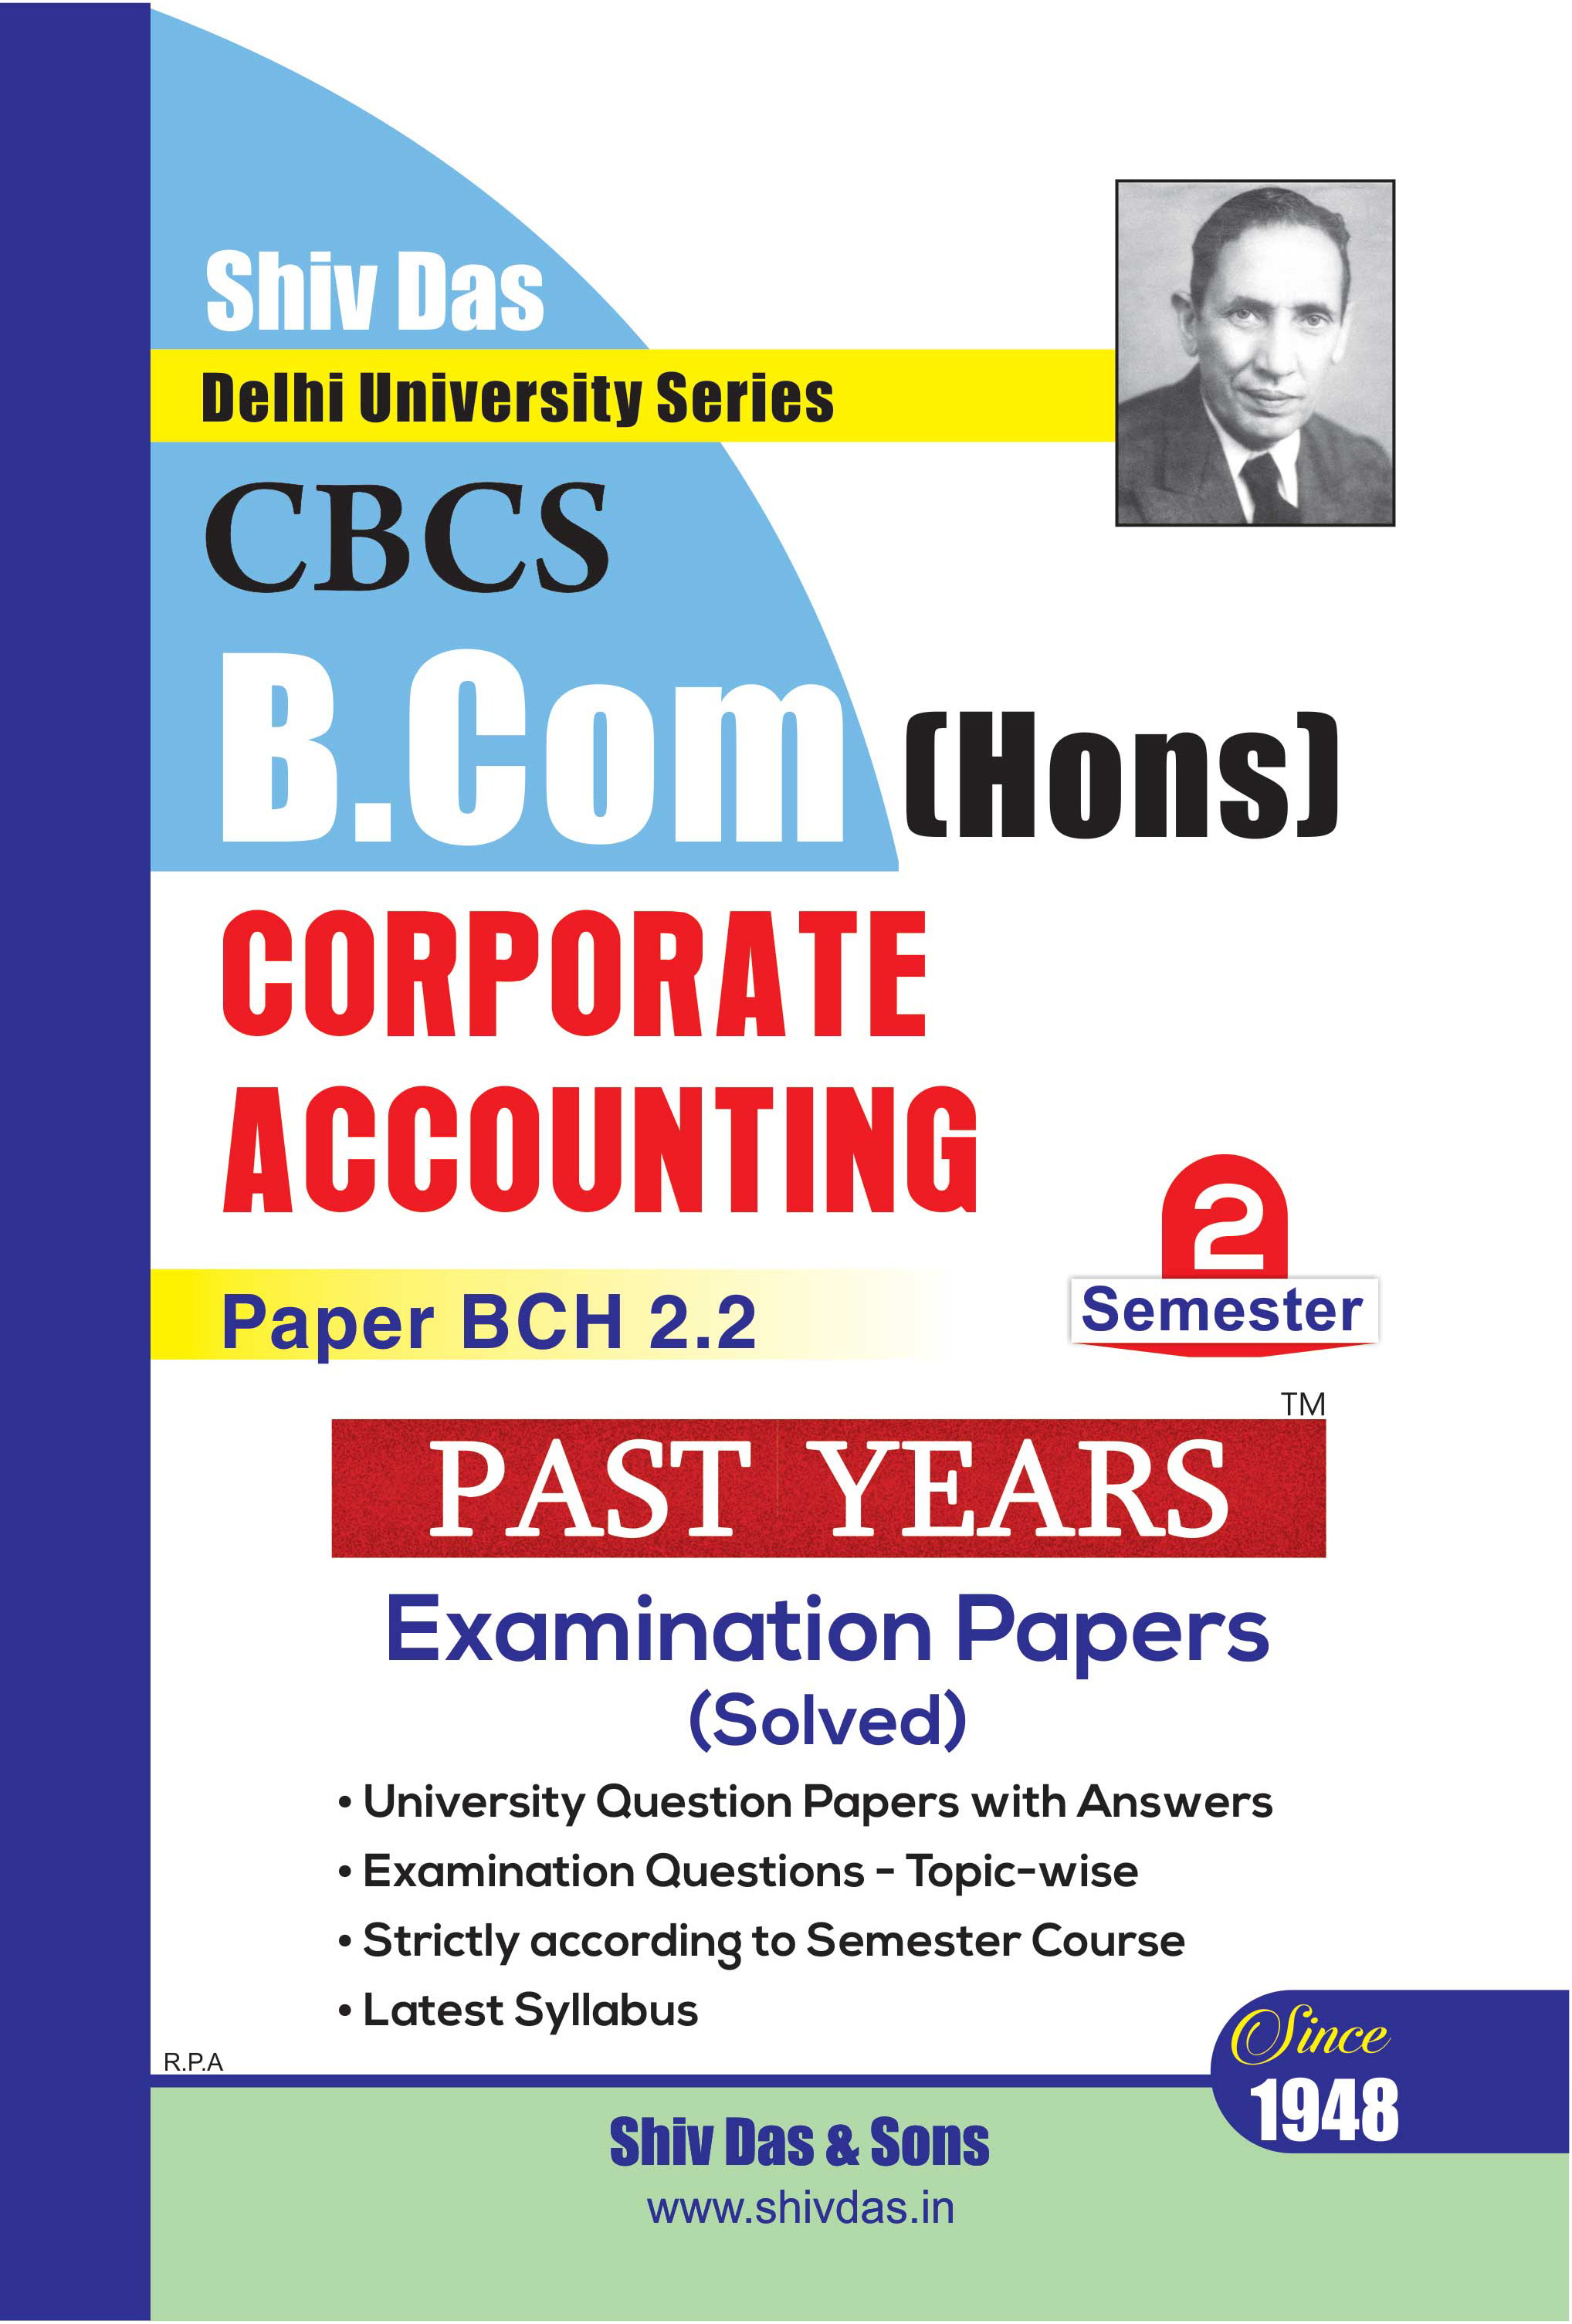 Corporate Accounting for B.Com Hons Semester 2